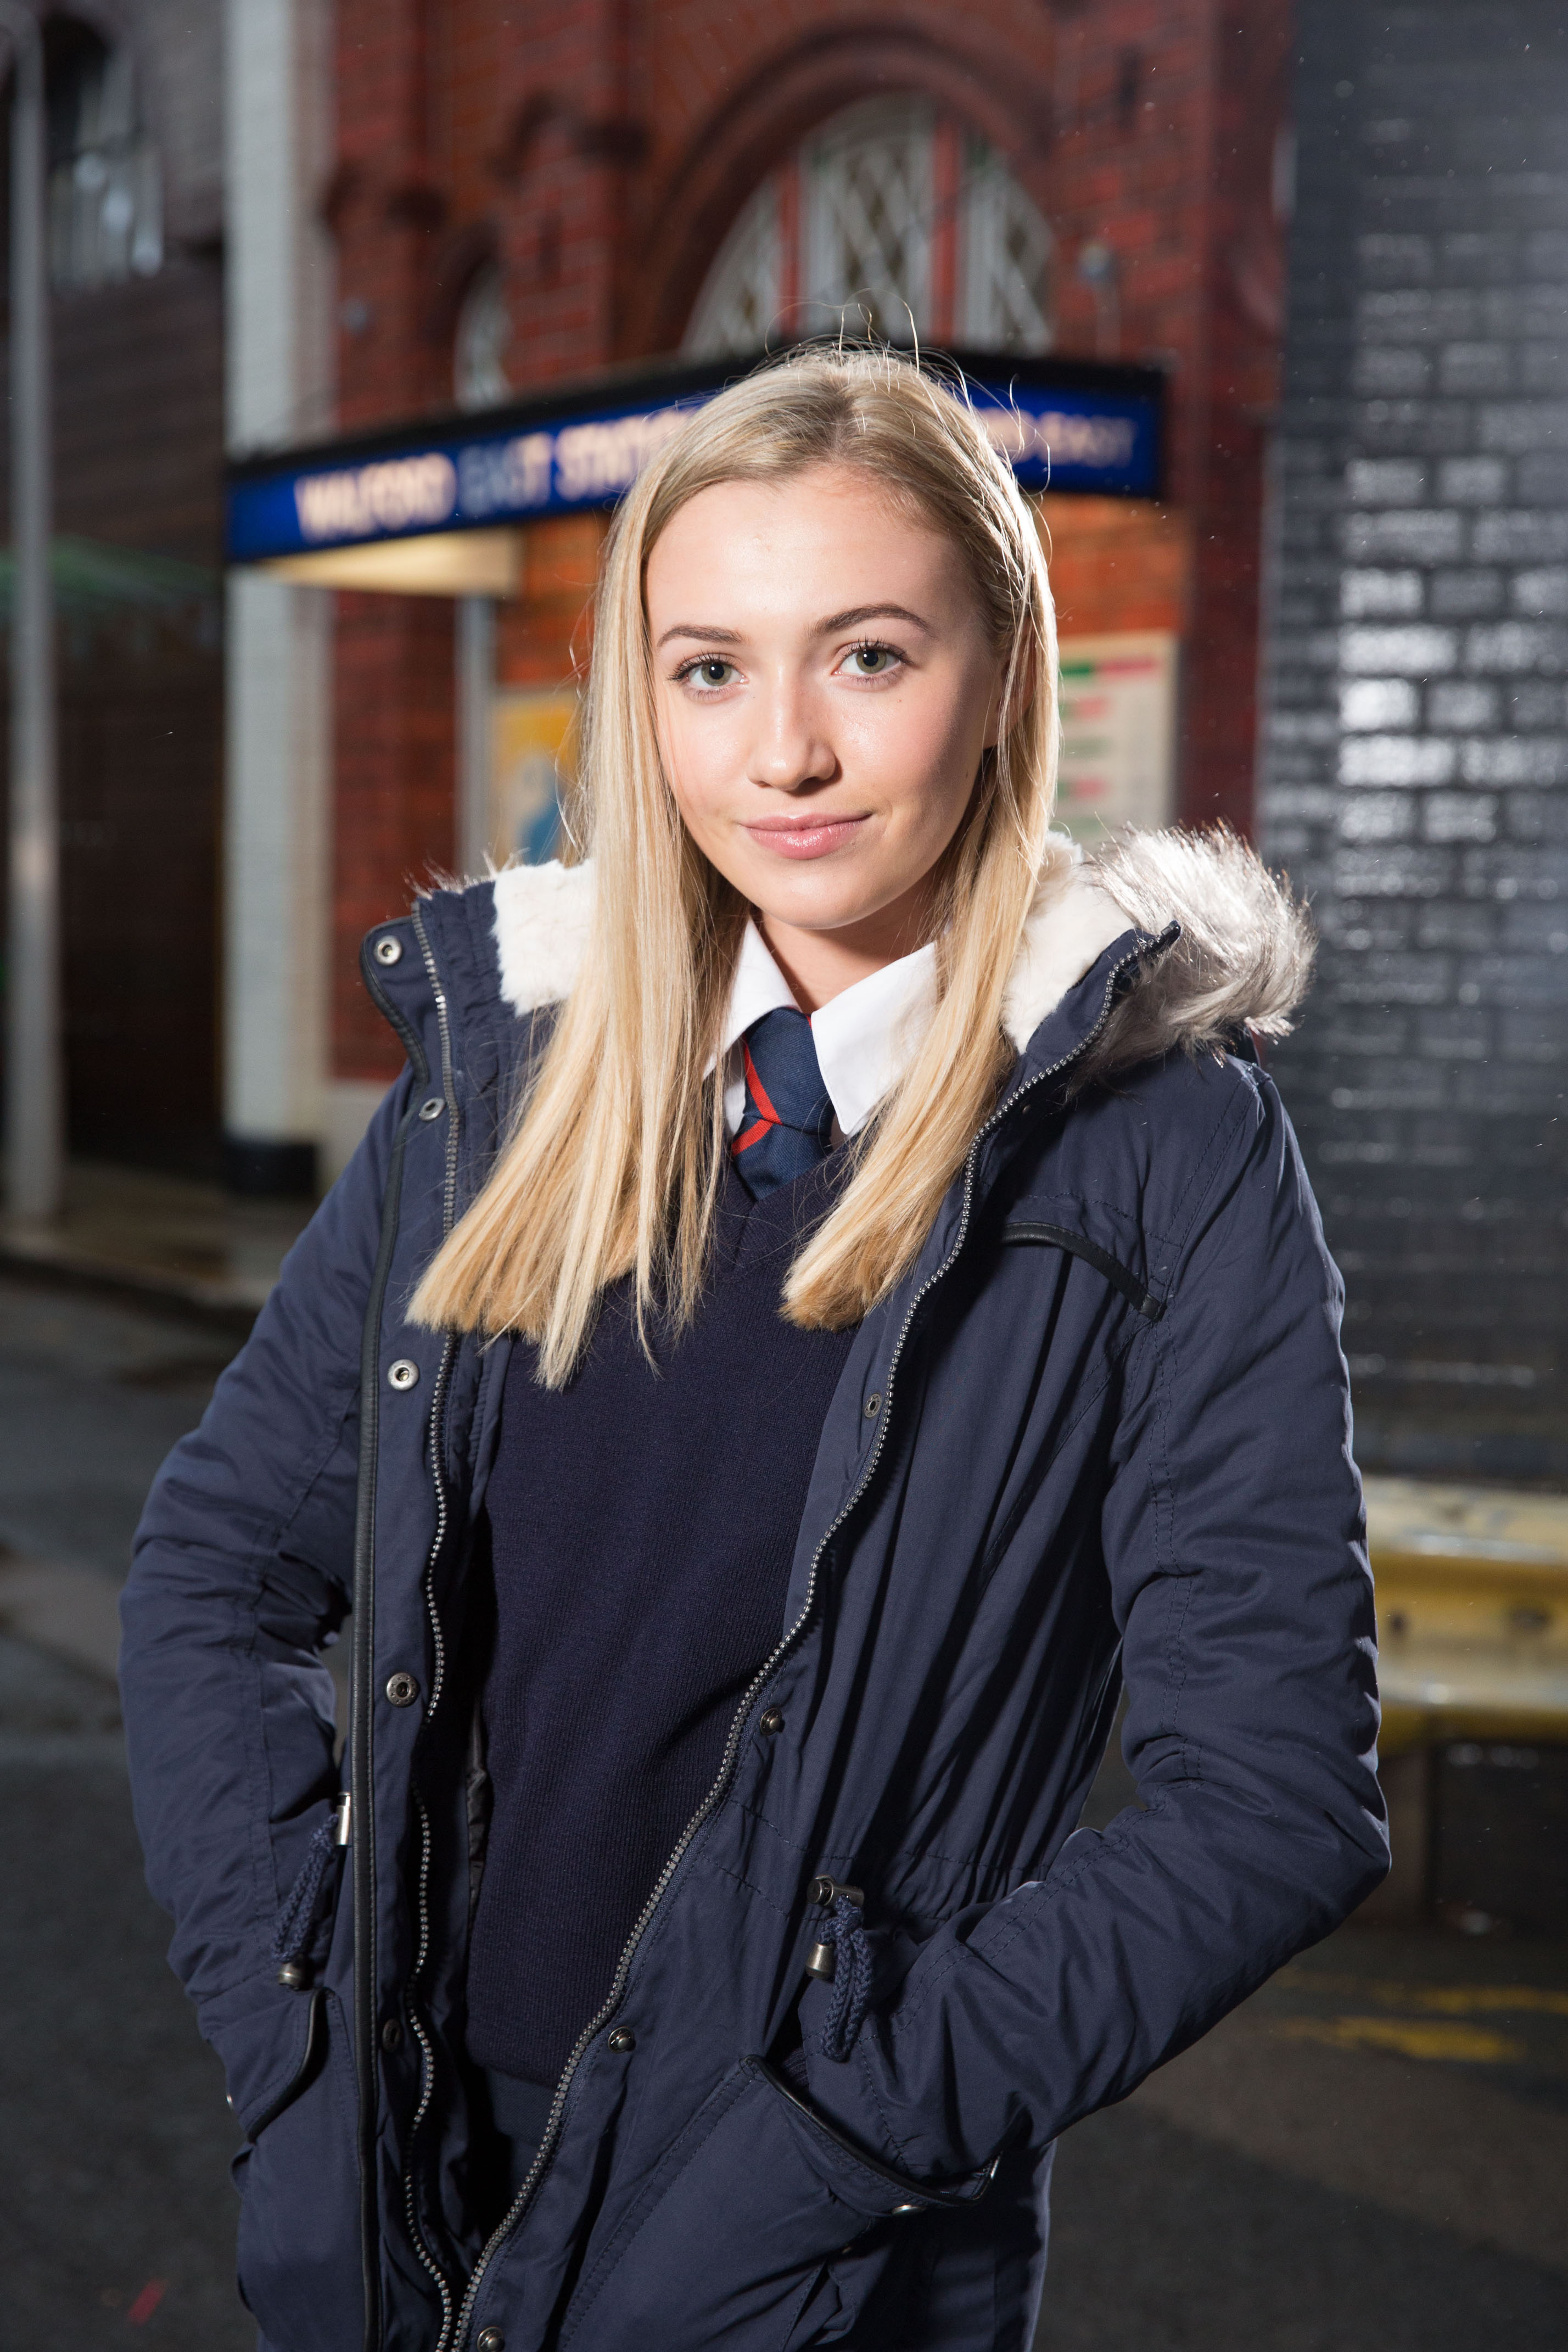 Programme Name: EastEnders - TX: 18/01/2016 - Episode: 5213 (No. n/a) - Picture Shows: Louise Fowler. Louise Fowler (TILLY KEEPER) - (C) BBC - Photographer: Jack Barnes